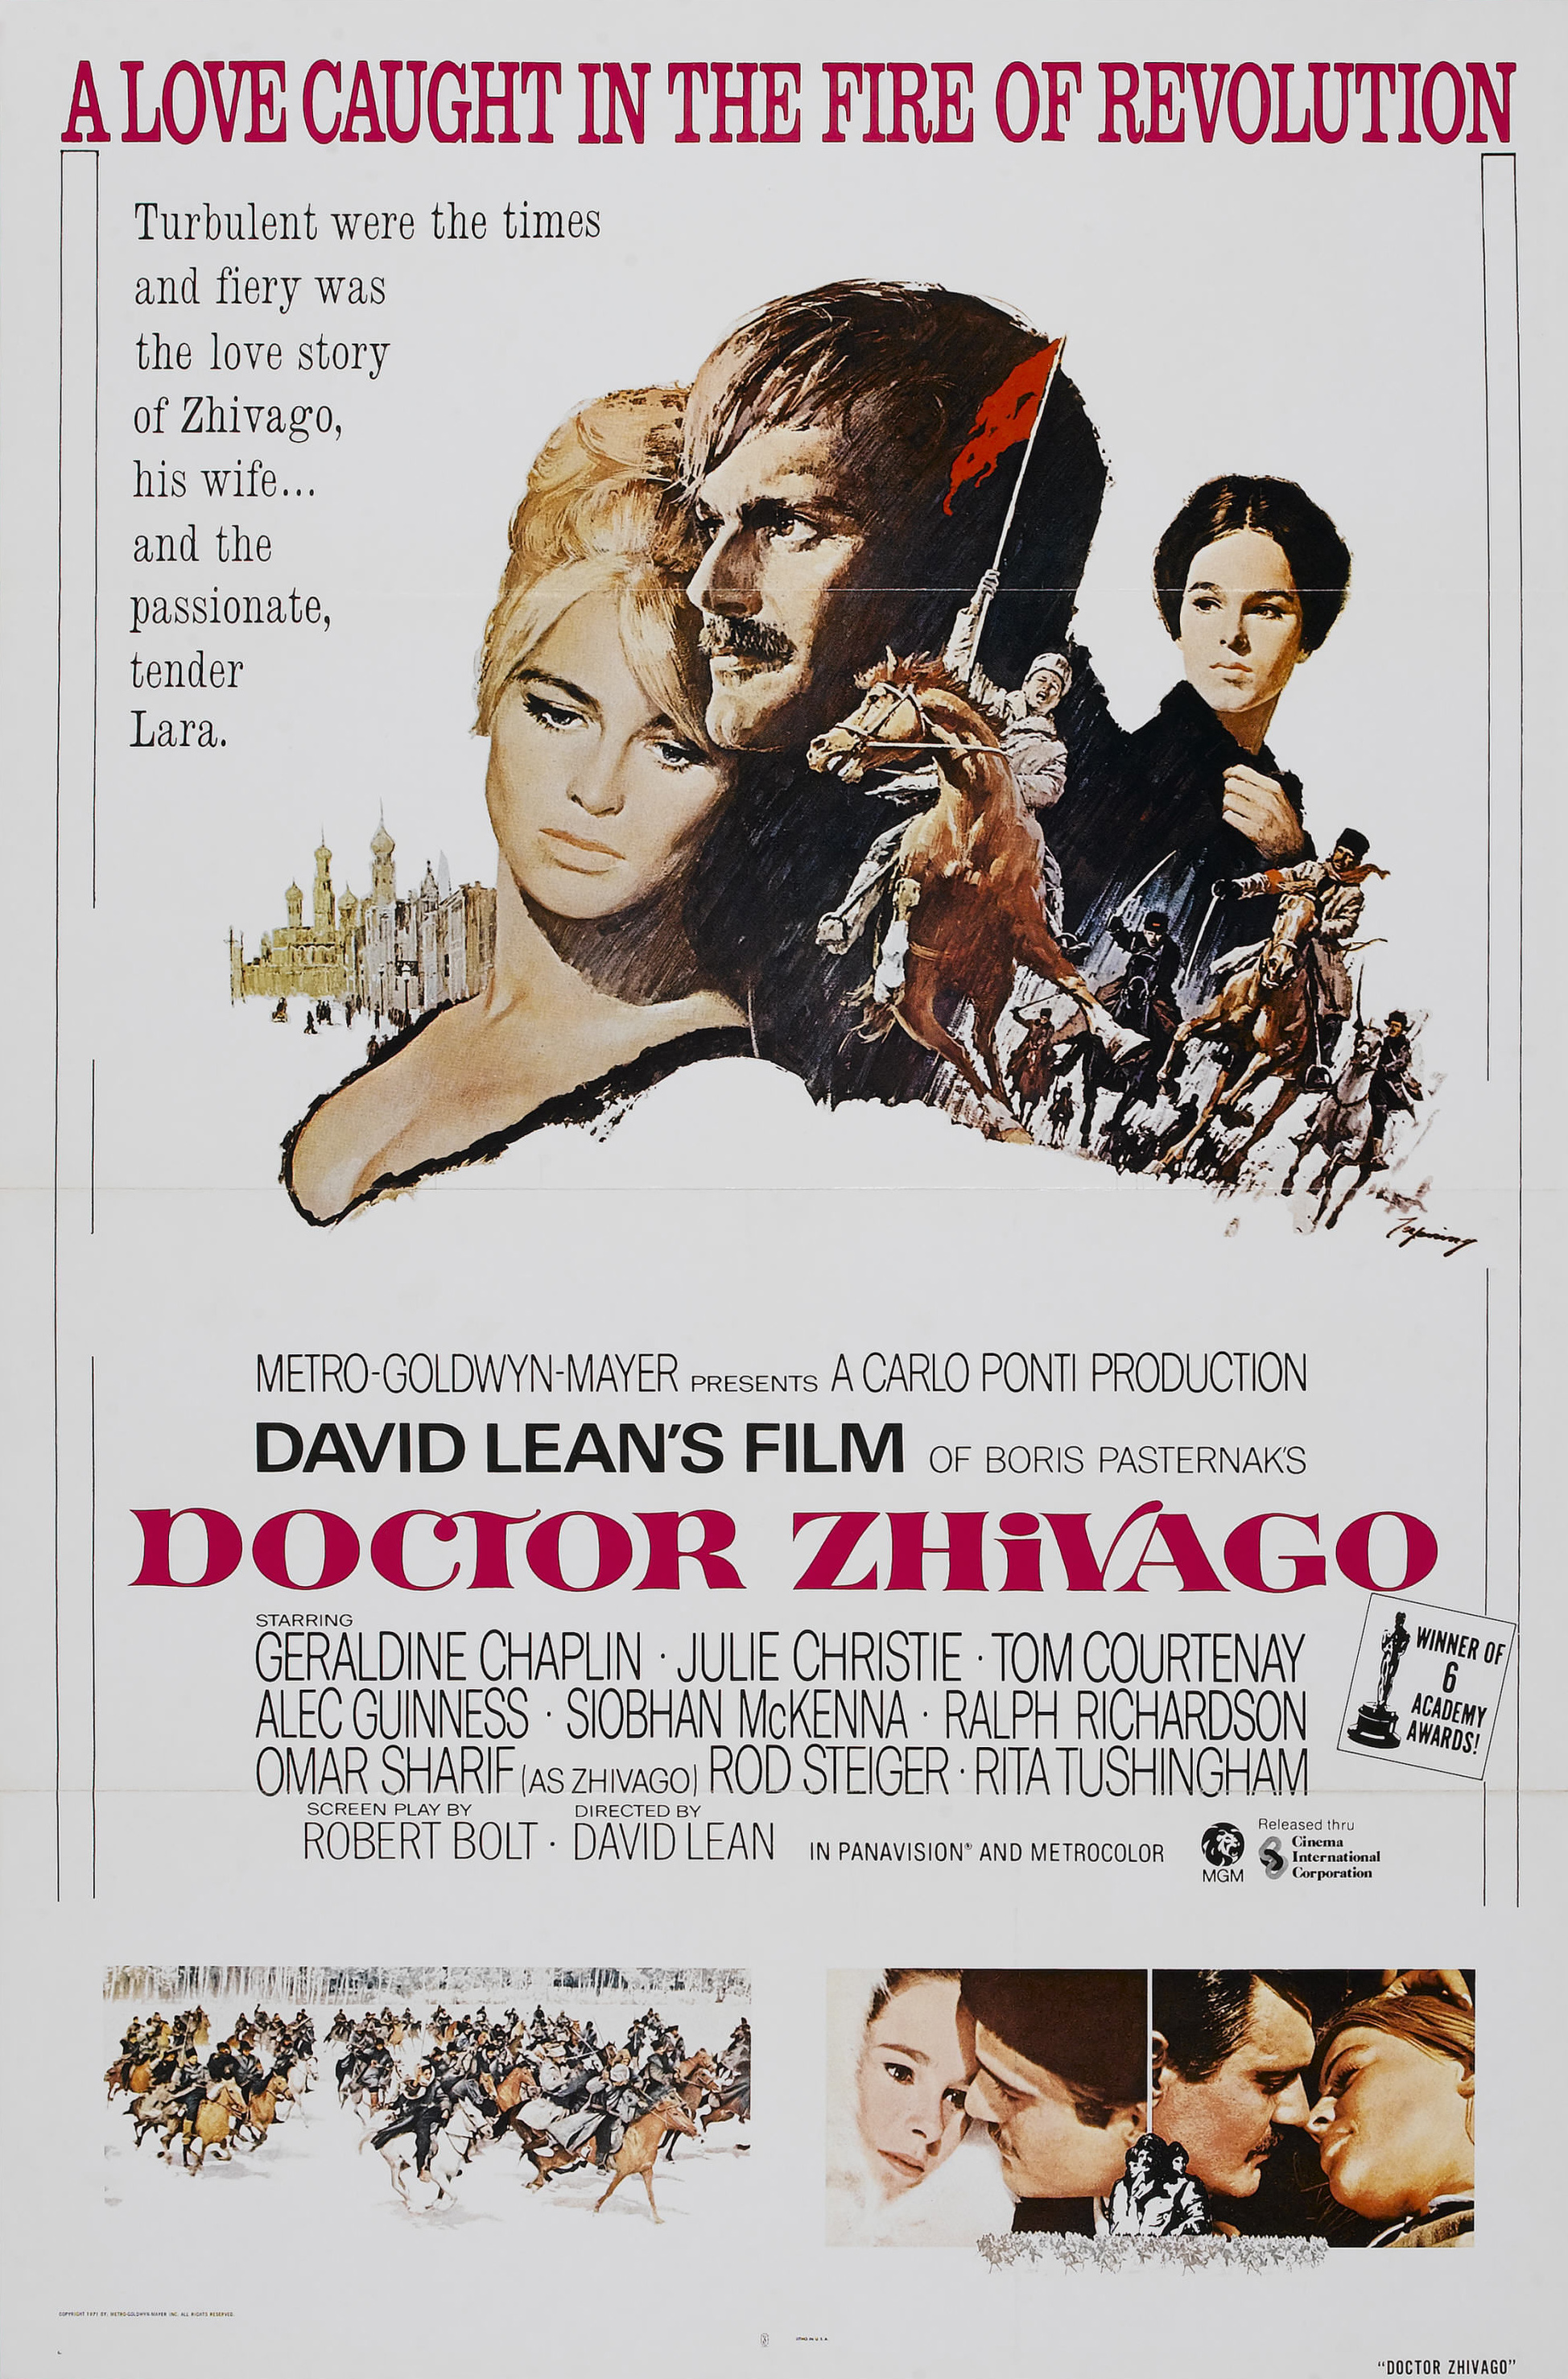 a summary and analysis of the movie dr zhivago When david lean's doctor zhivago was released in 1965, it was pounced upon by the critics, who found it a picture-postcard view of revolution, a love story balanced uneasily atop a.